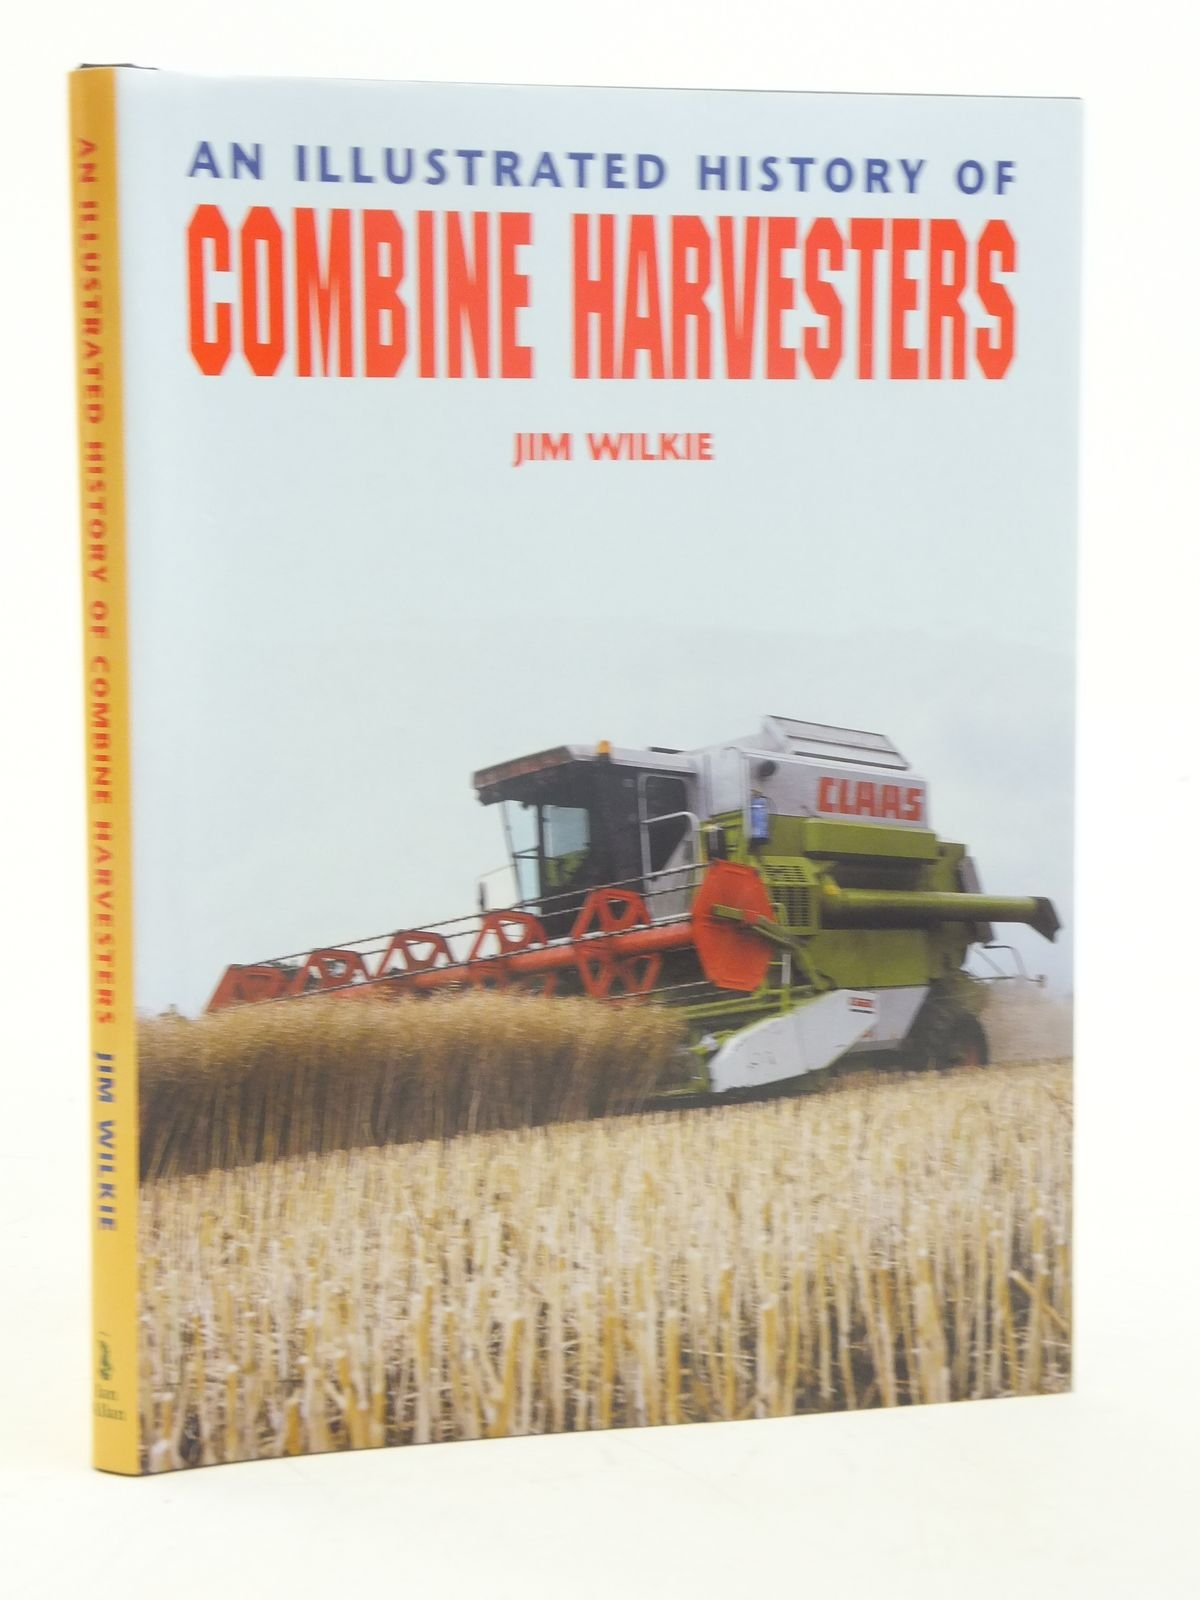 Download An Illustrated History of Combine Harvesters (Illustrated History) ebook